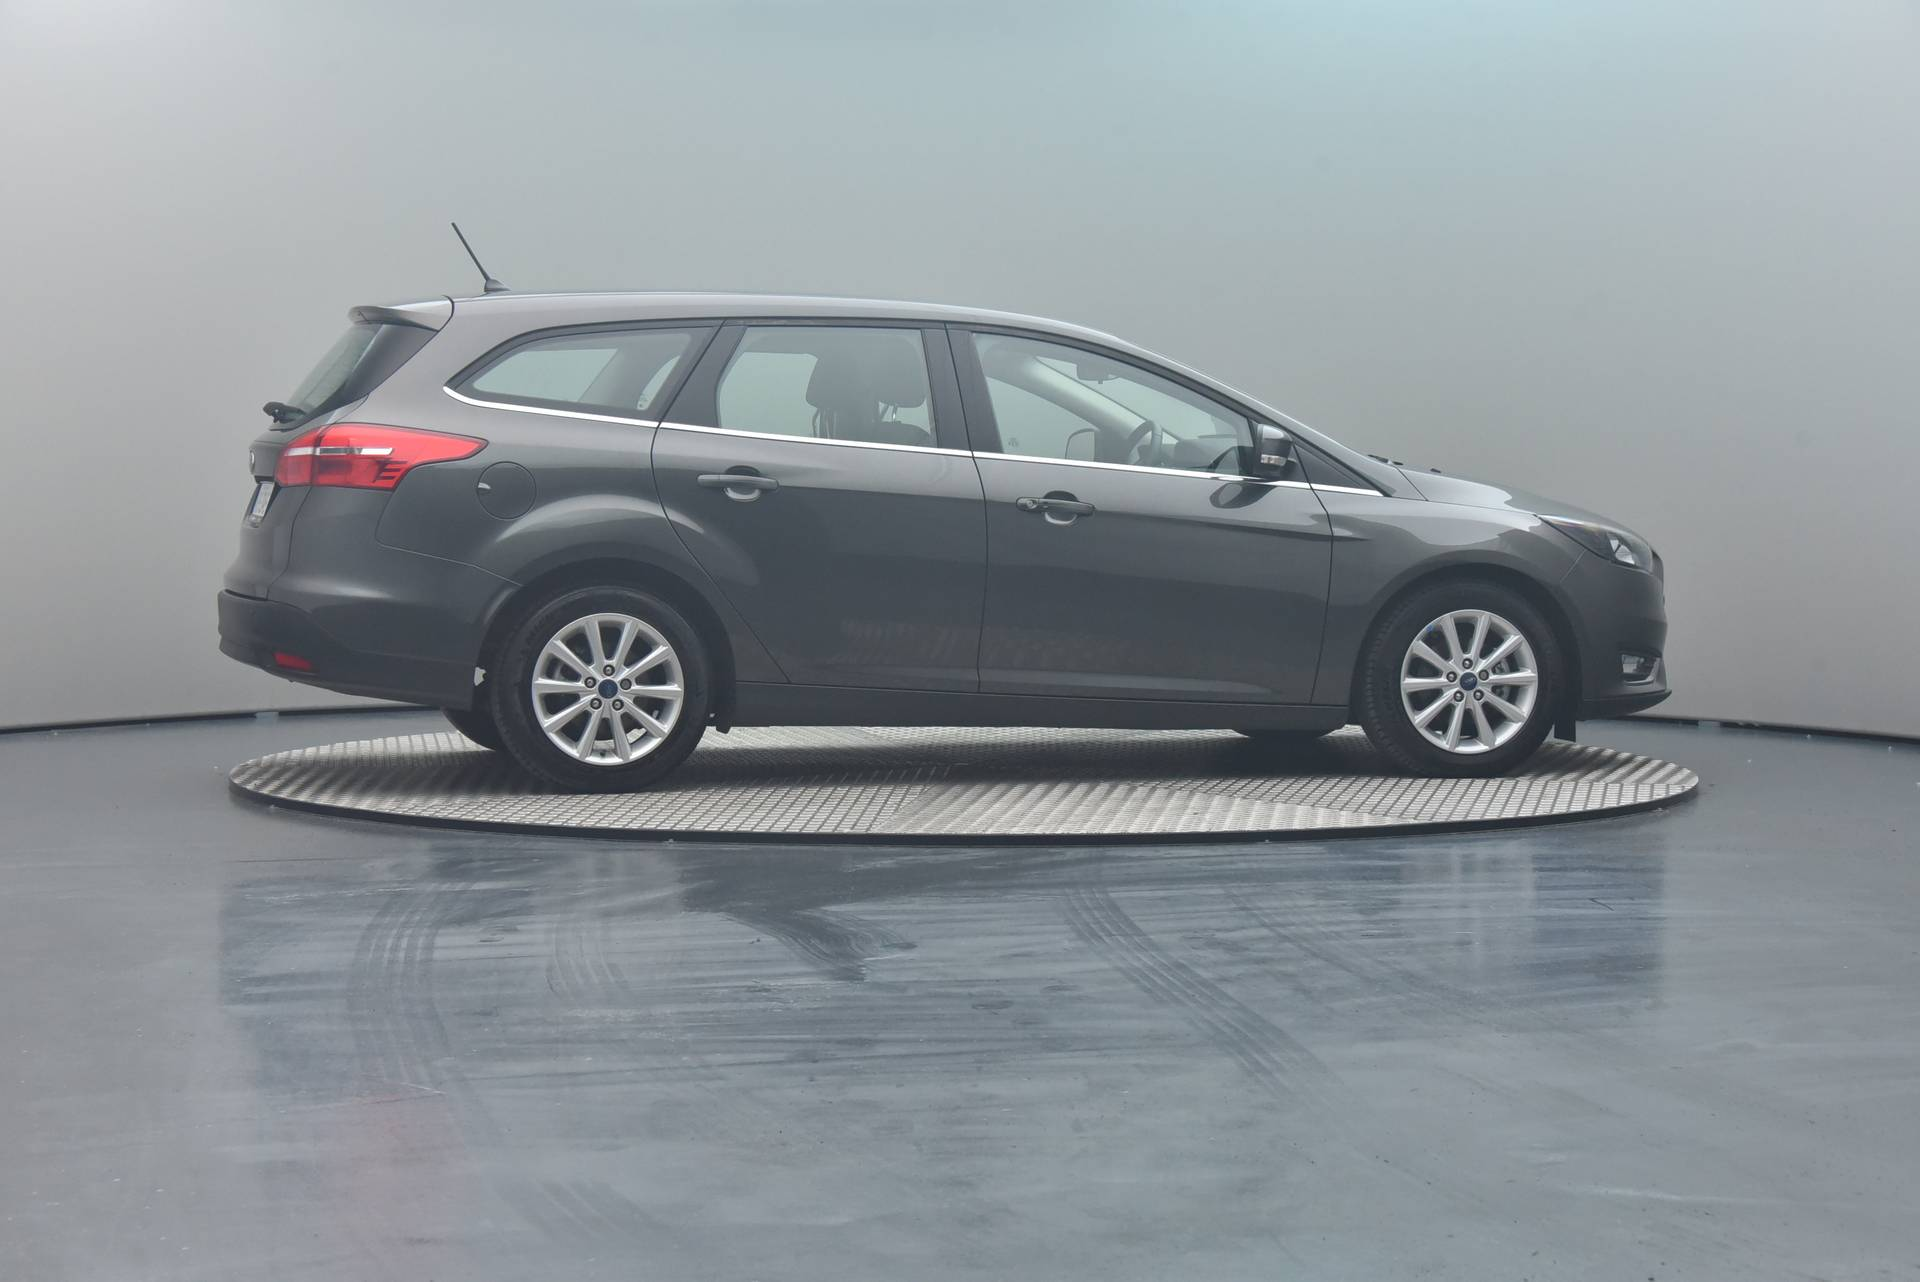 Ford Focus Turnier 1.5 TDCi DPF Start-Stopp-System, Business, 360-image27